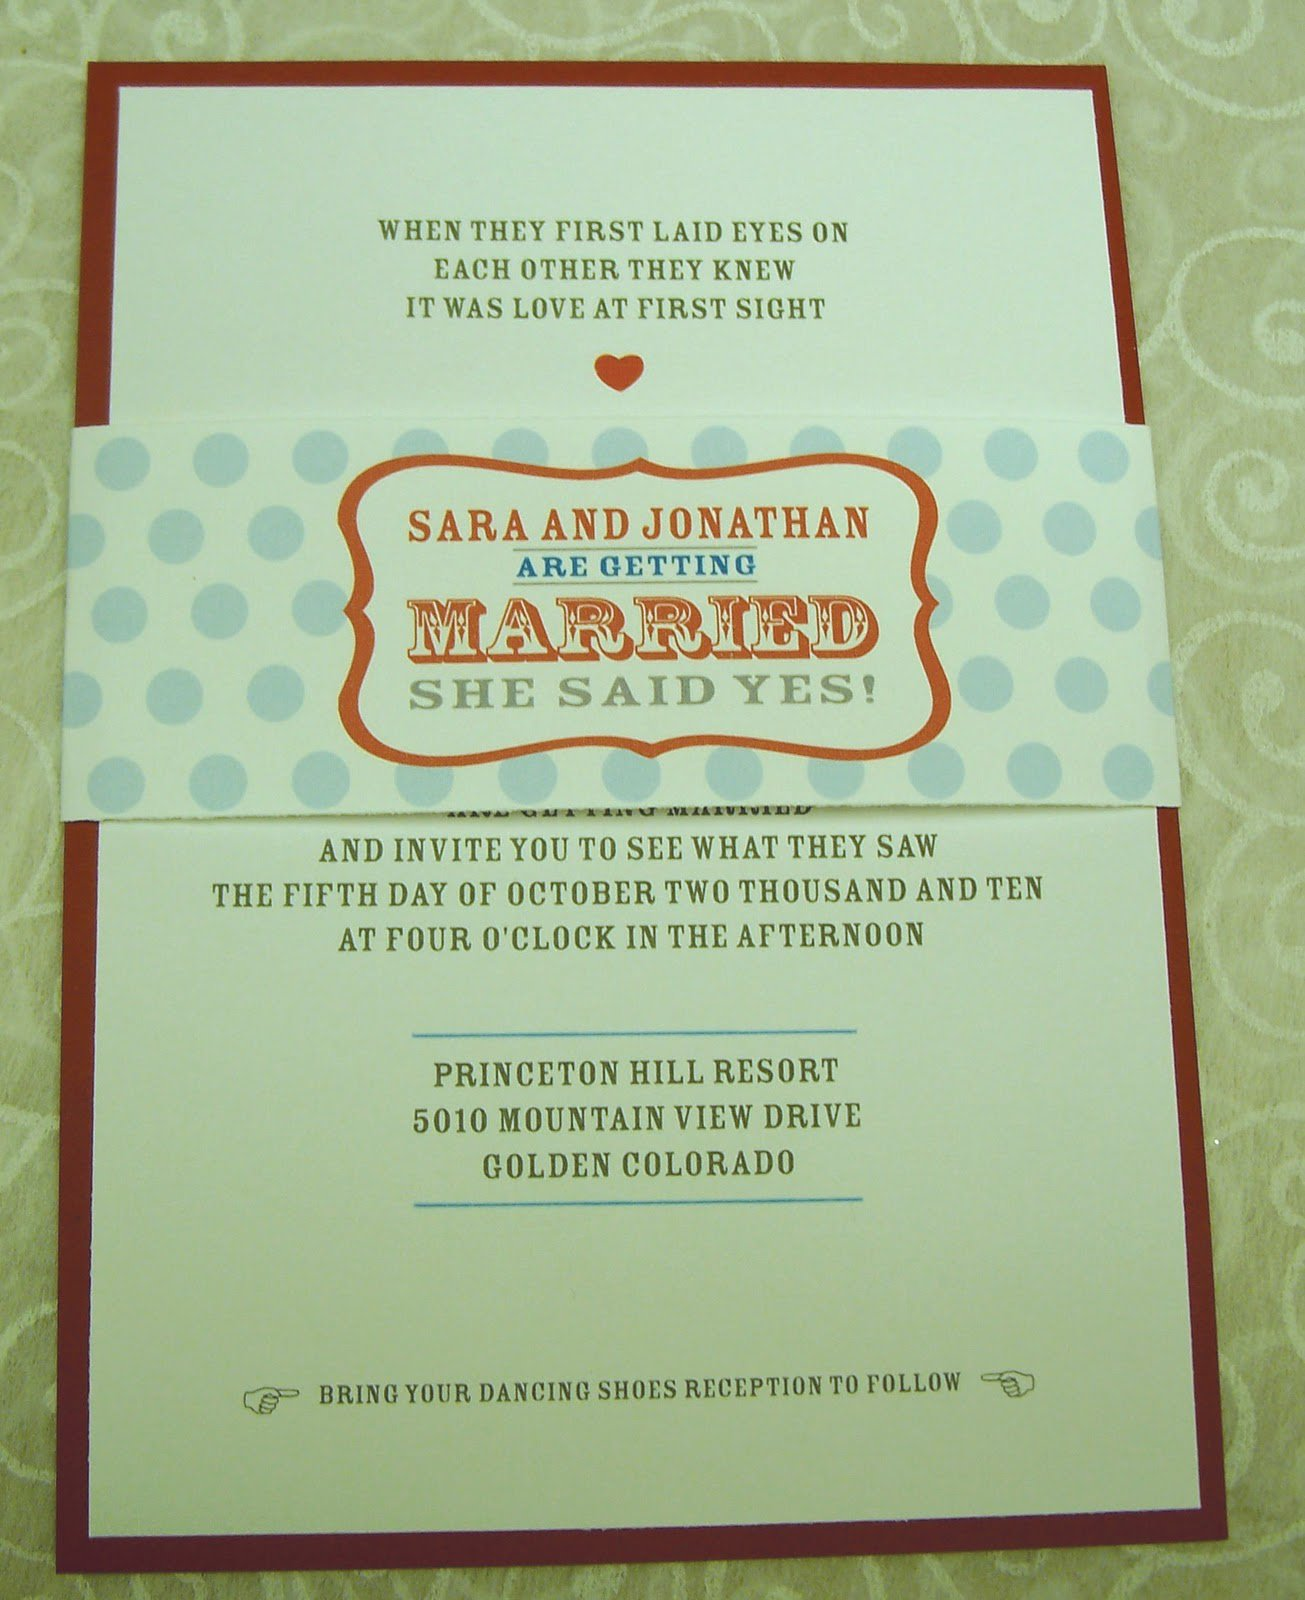 Wedding Invitation Wording Etiquette Reception To Foll Matik